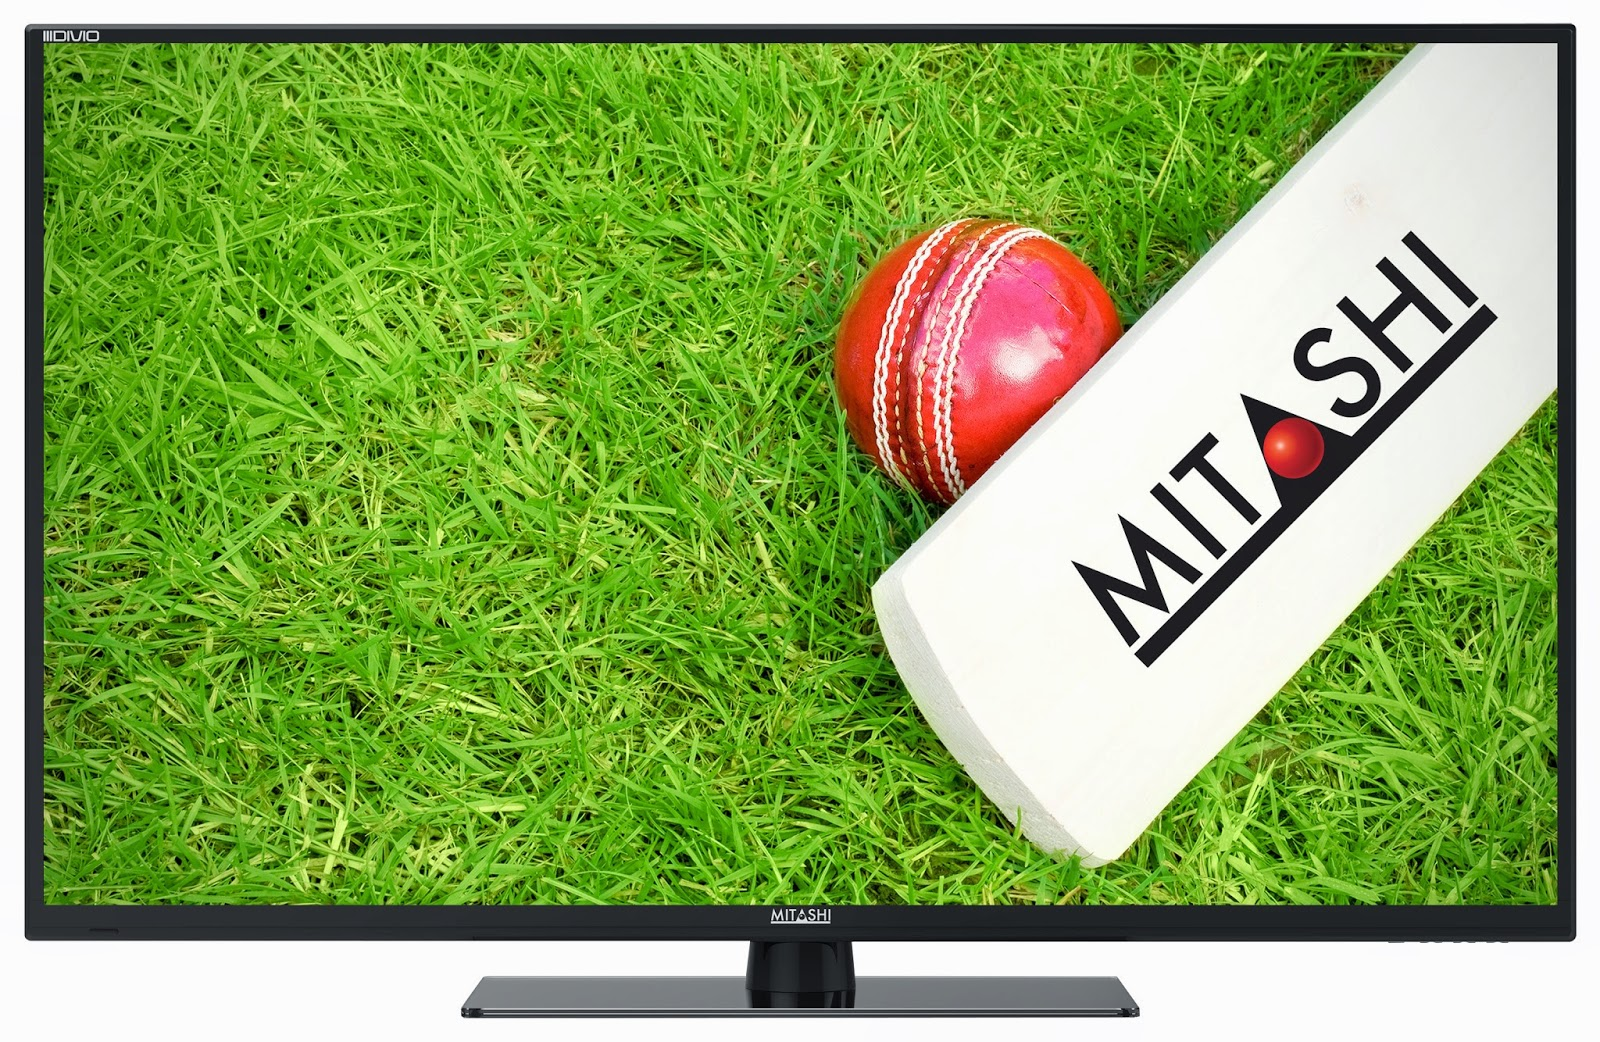 Mitashi 58-inch LED TV for the cricket World Cup